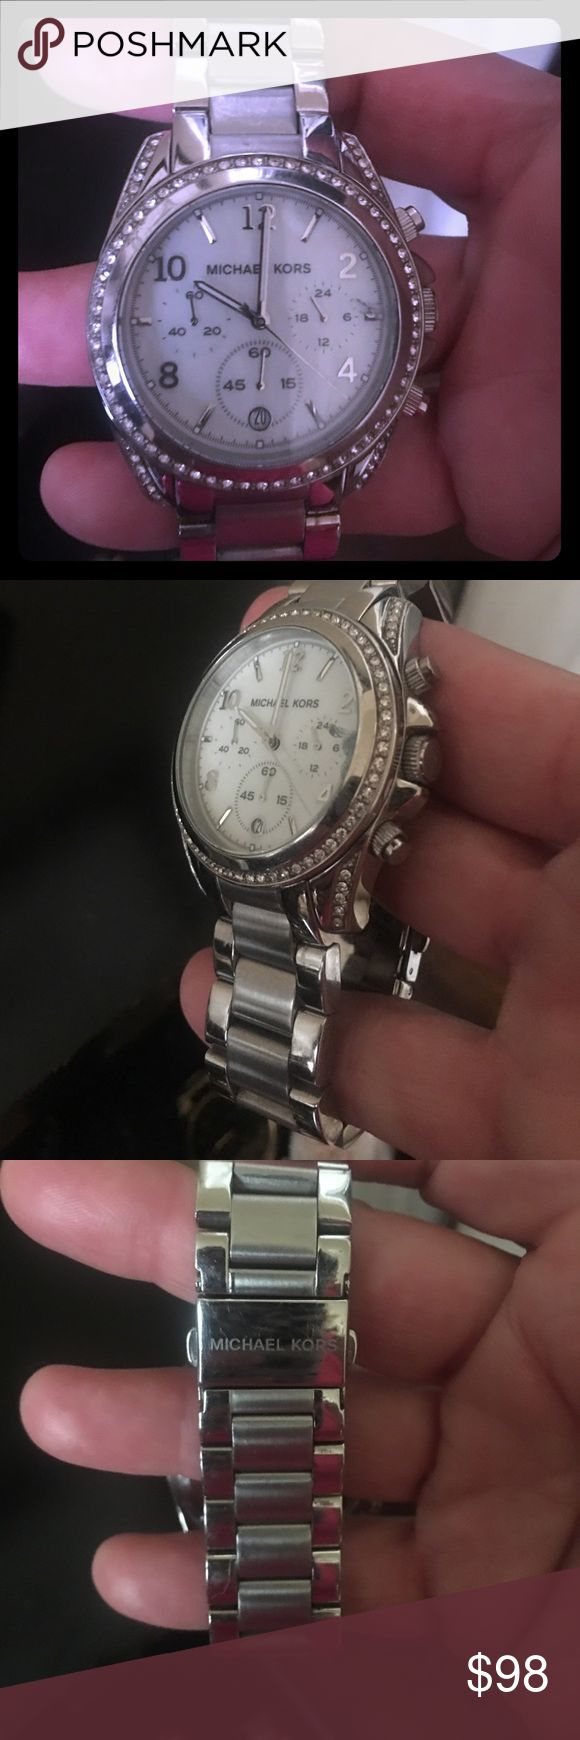 Michael Kors ladies silver watch w/stone detail Michael Kors ladies silver watch w/mother of pearl face. Watch is in brand new condition. KORS Michael Kors Accessories Watches